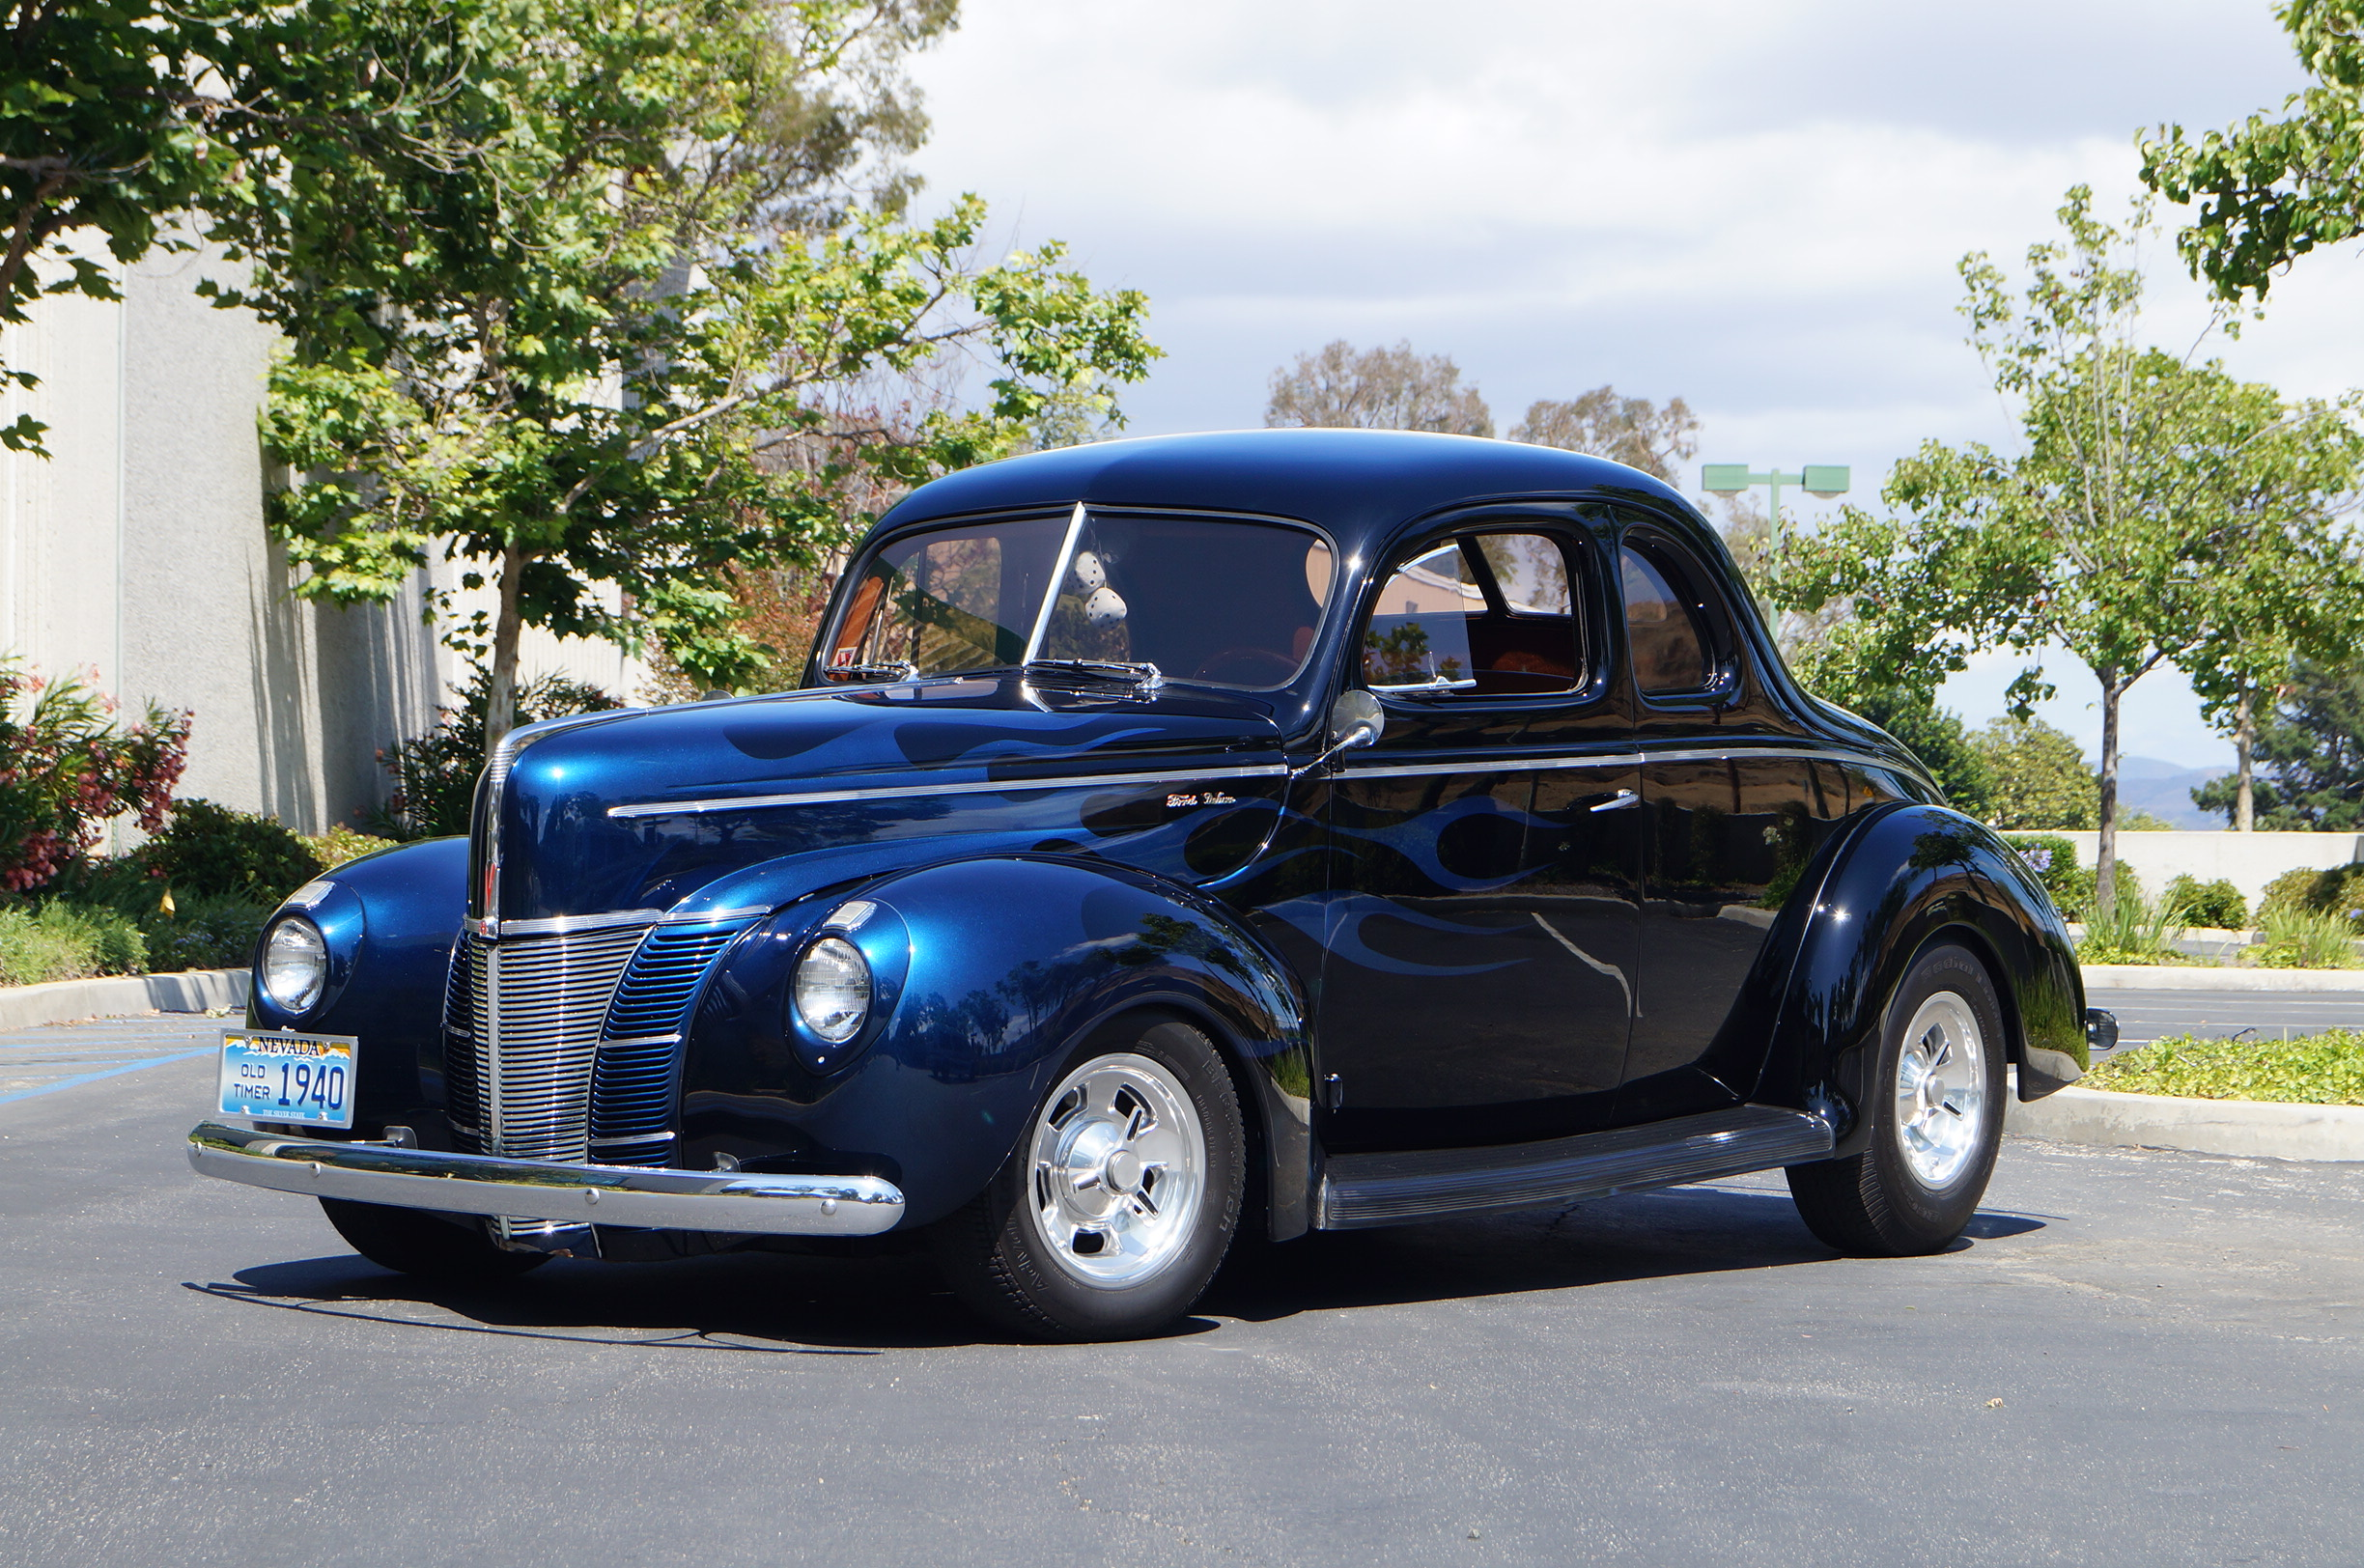 Blue 1940 Ford Custom Coupe